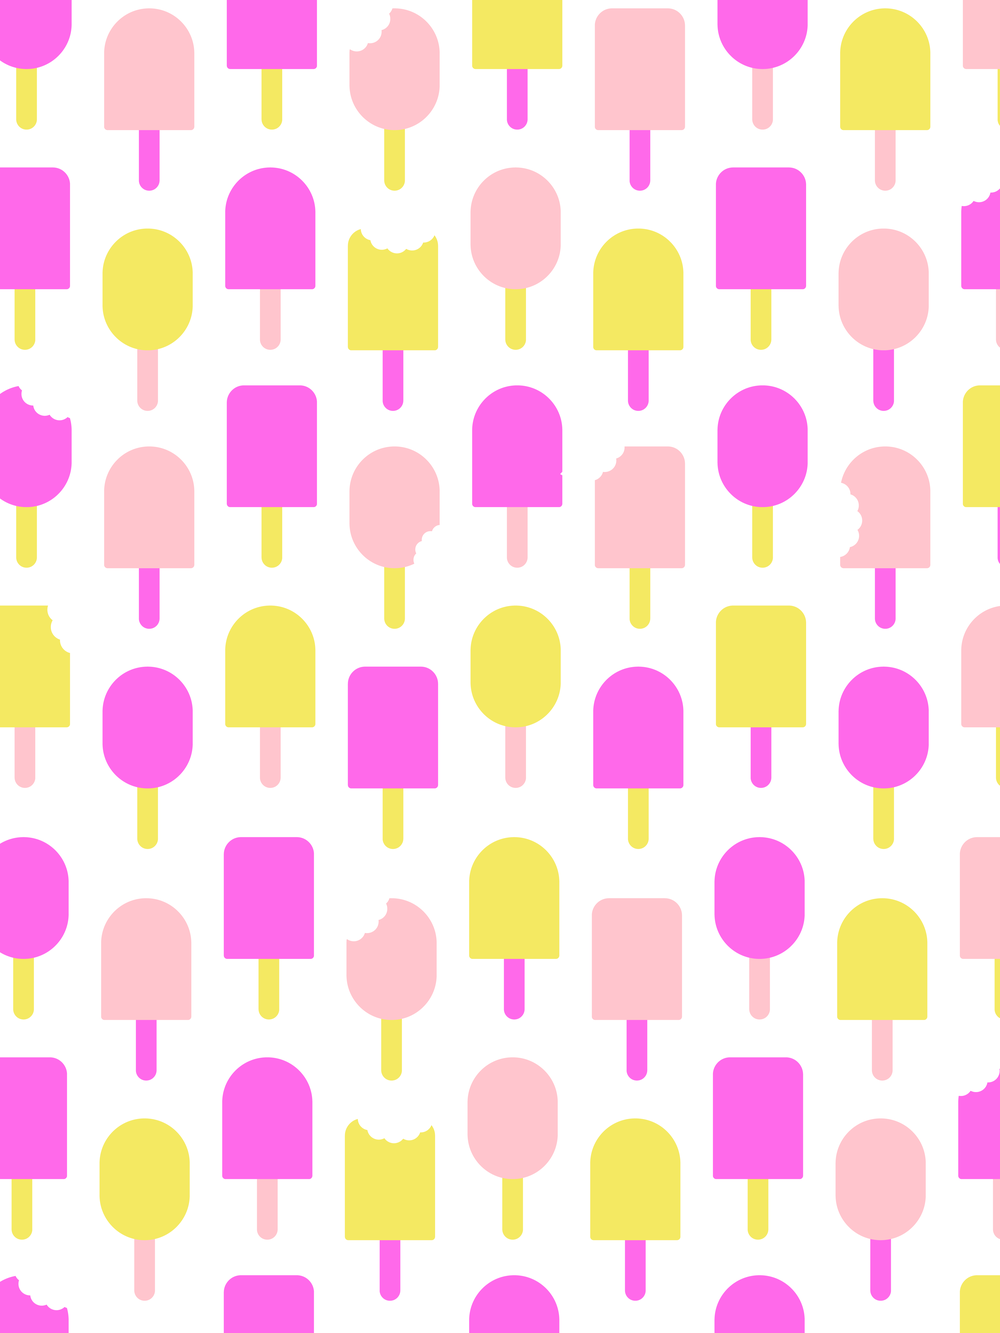 Glace_Lockup-02.png